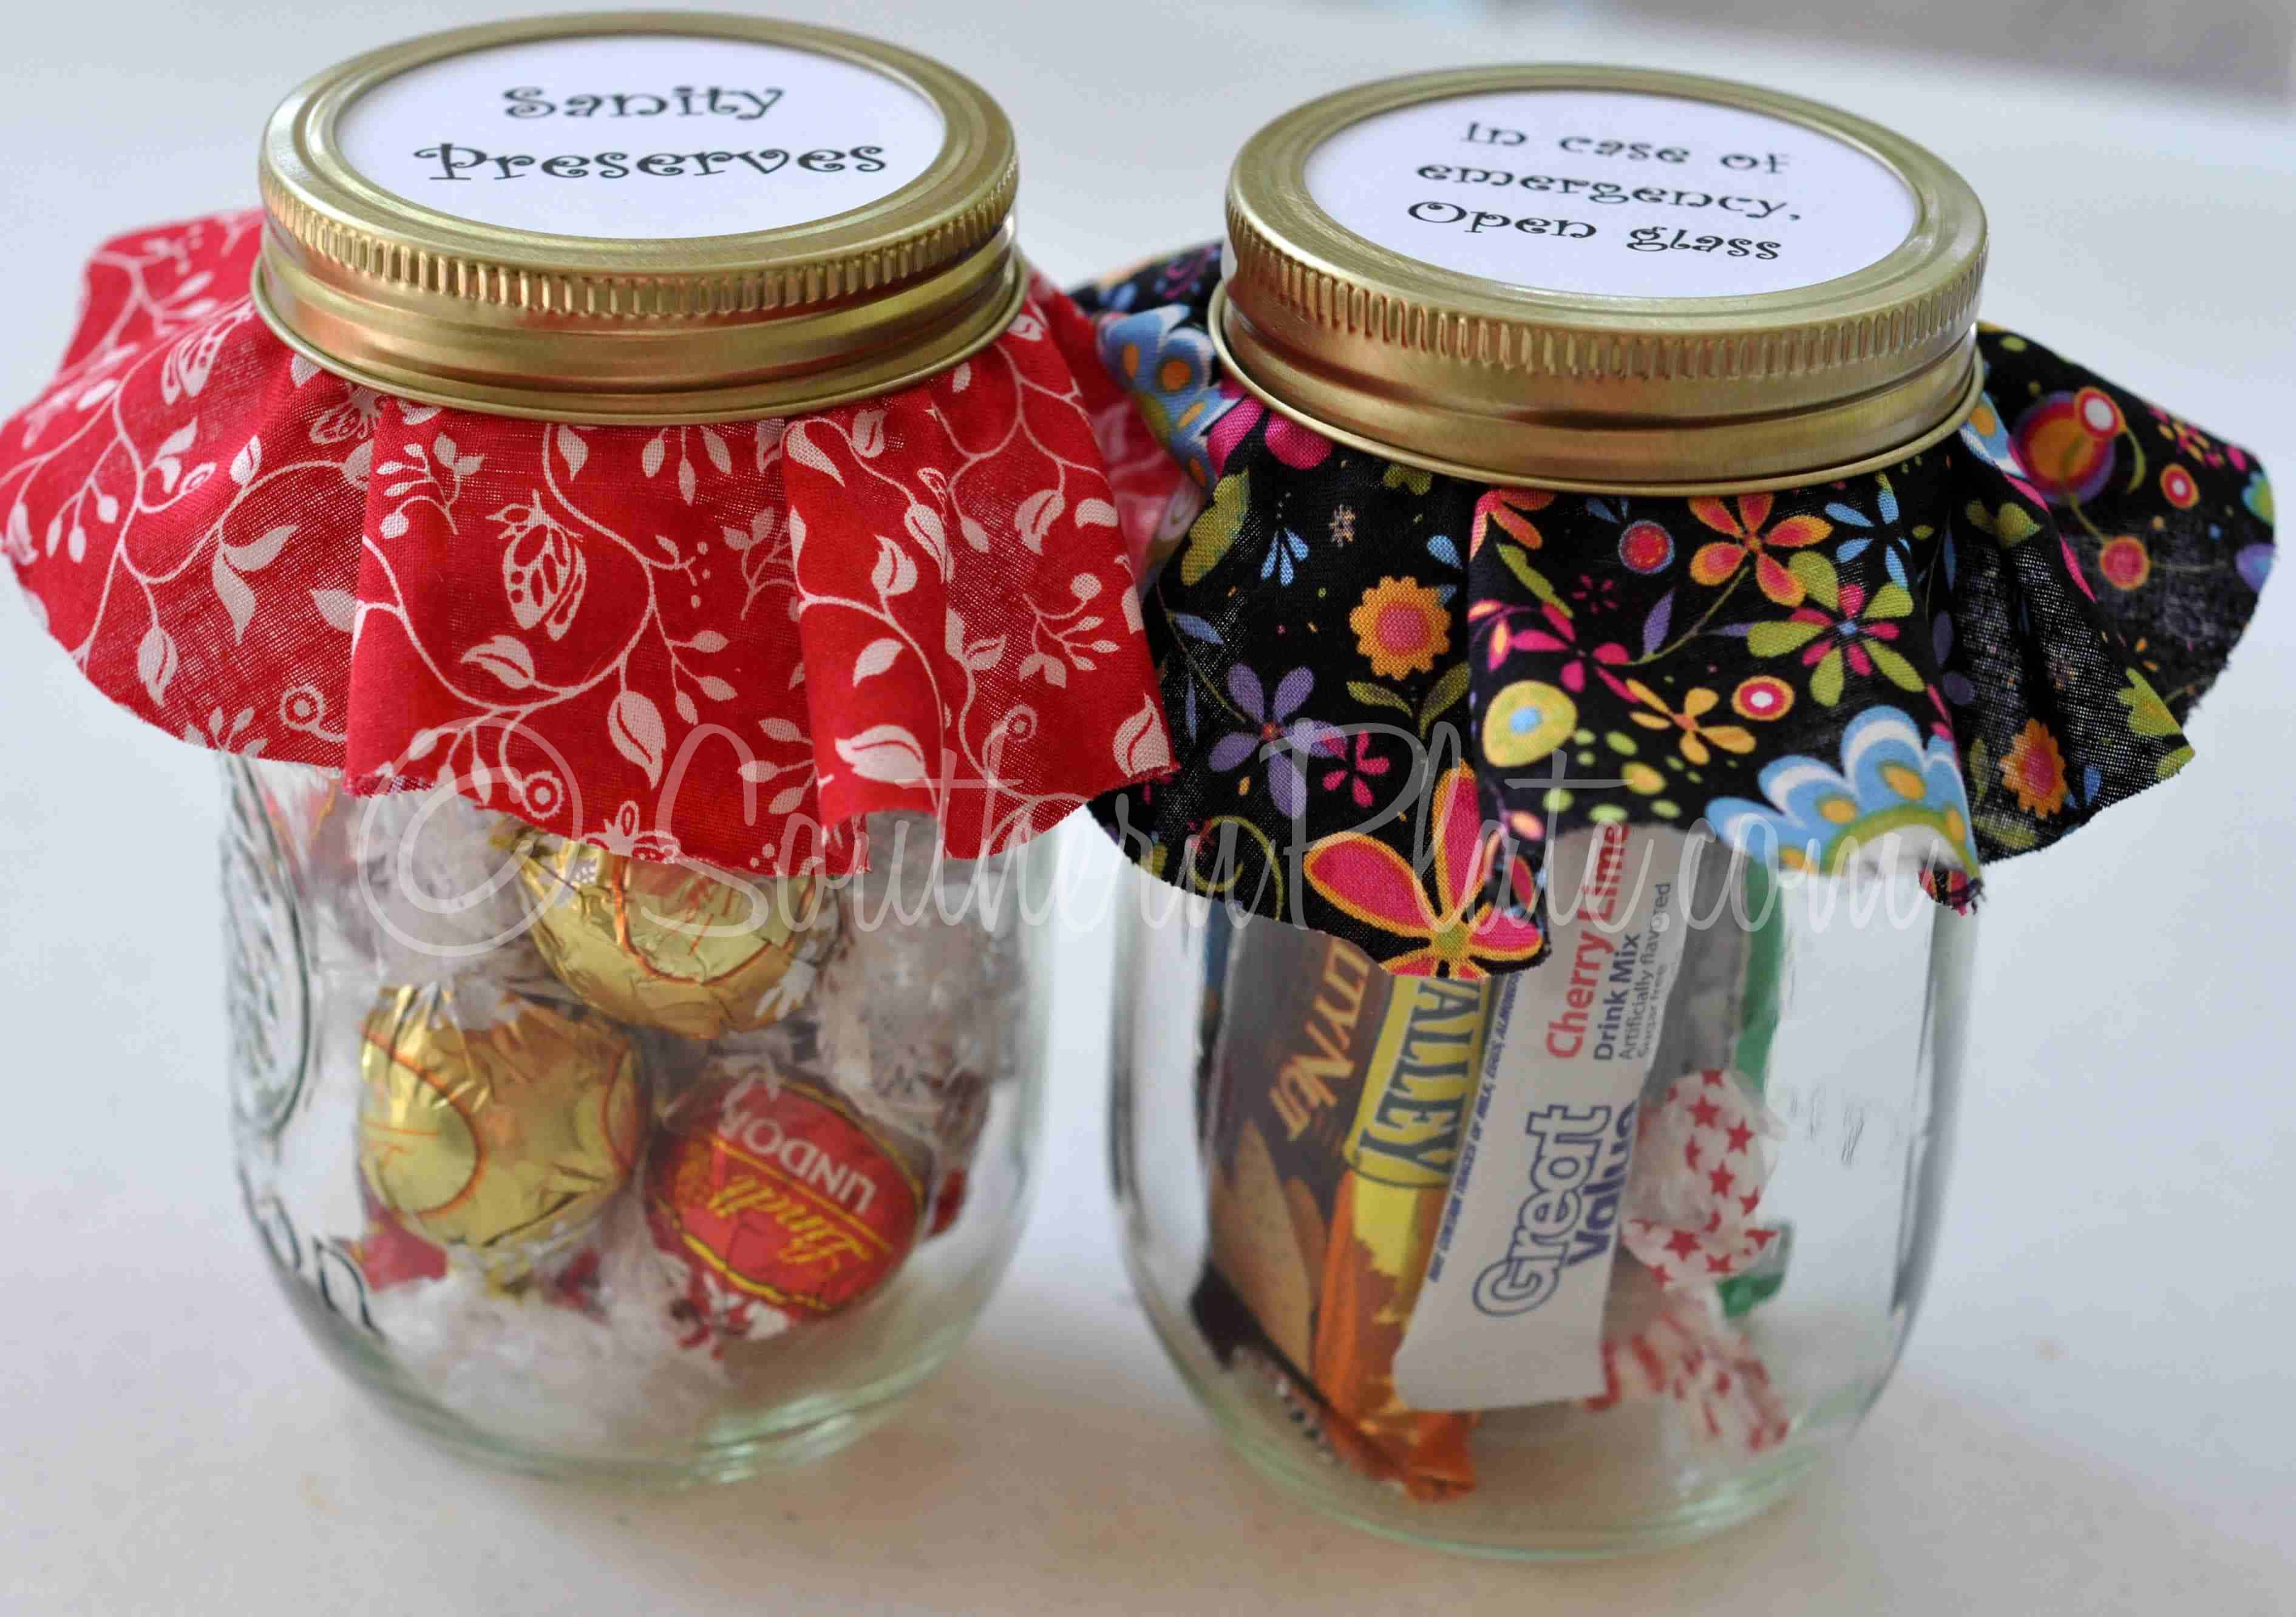 DIY Appreciation Gifts for School, Work, or Friends | Southern Plate